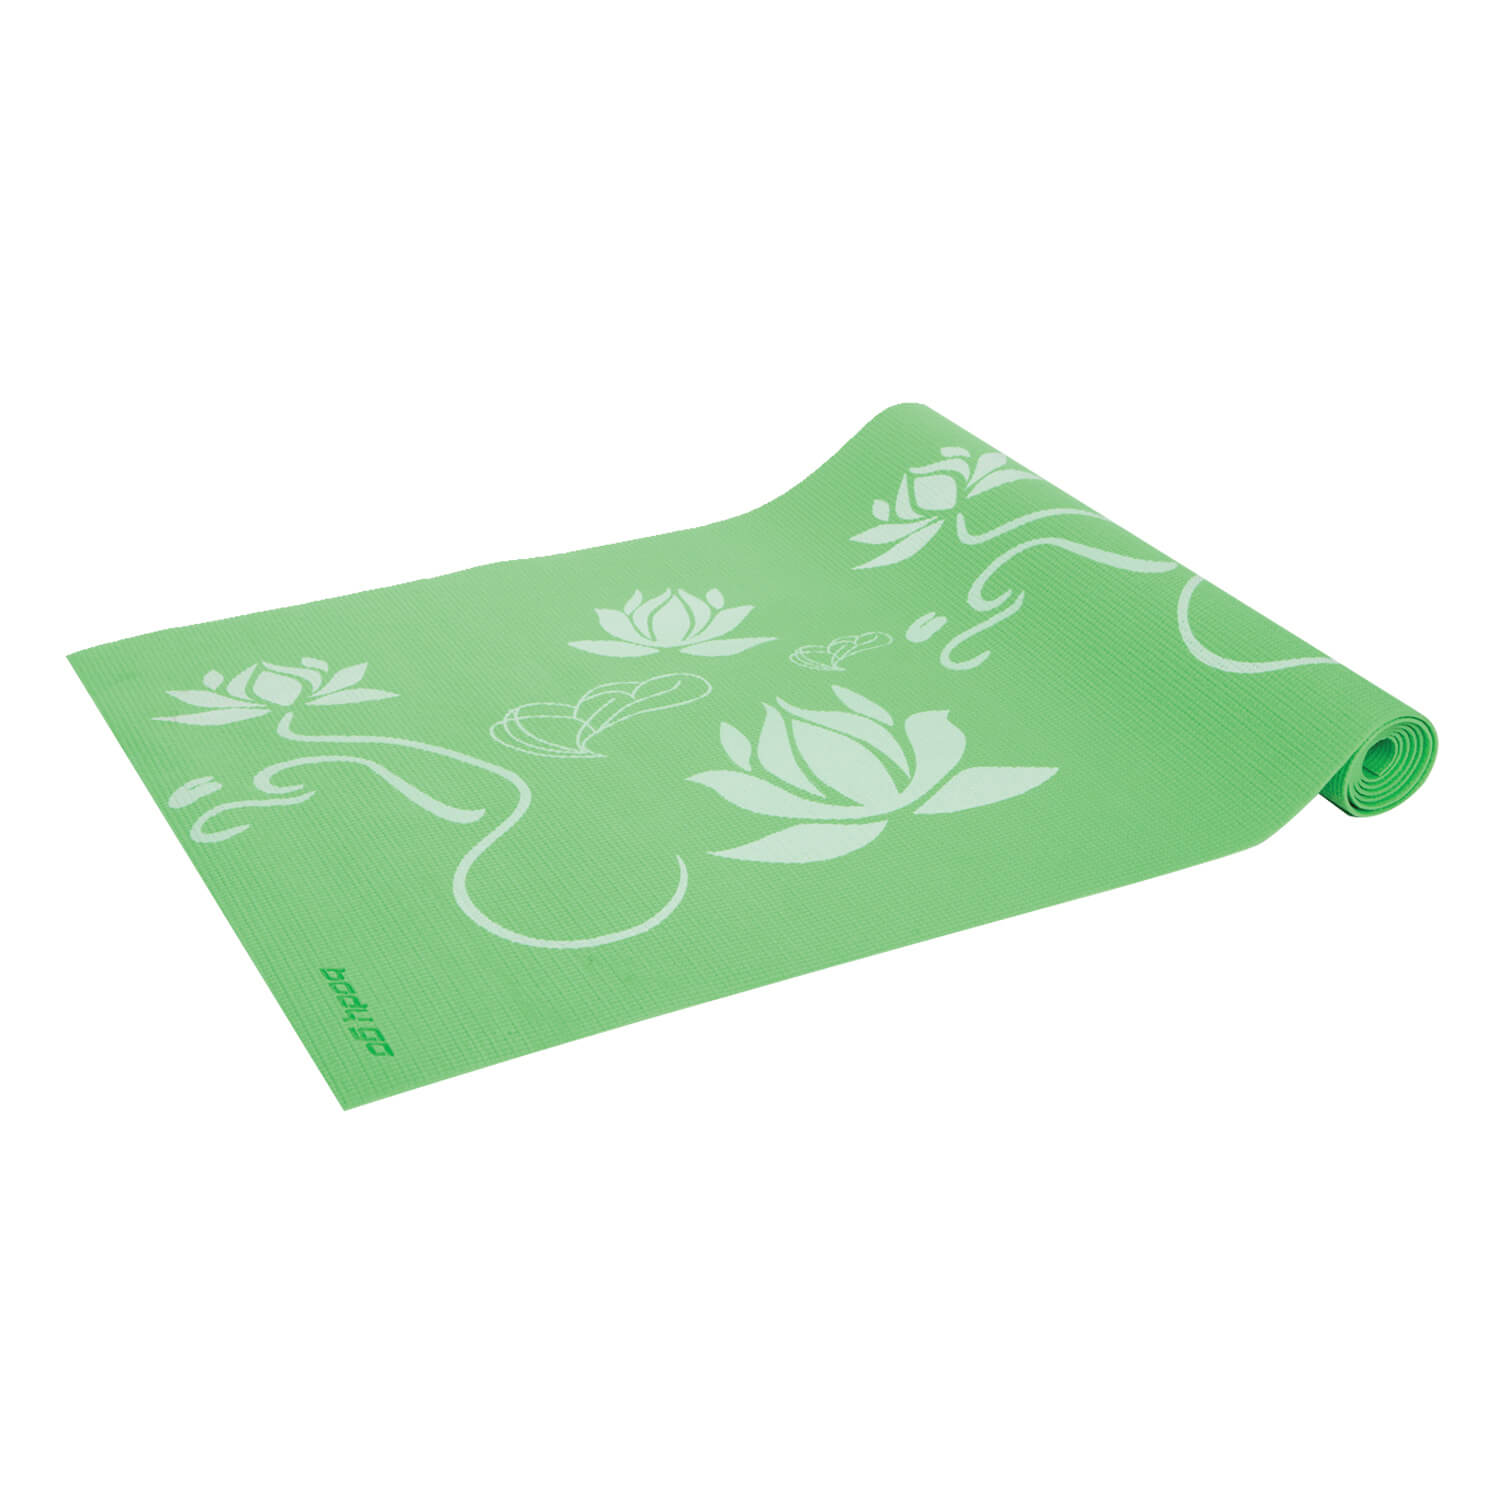 PVC Yoga Mat with Printed Surface